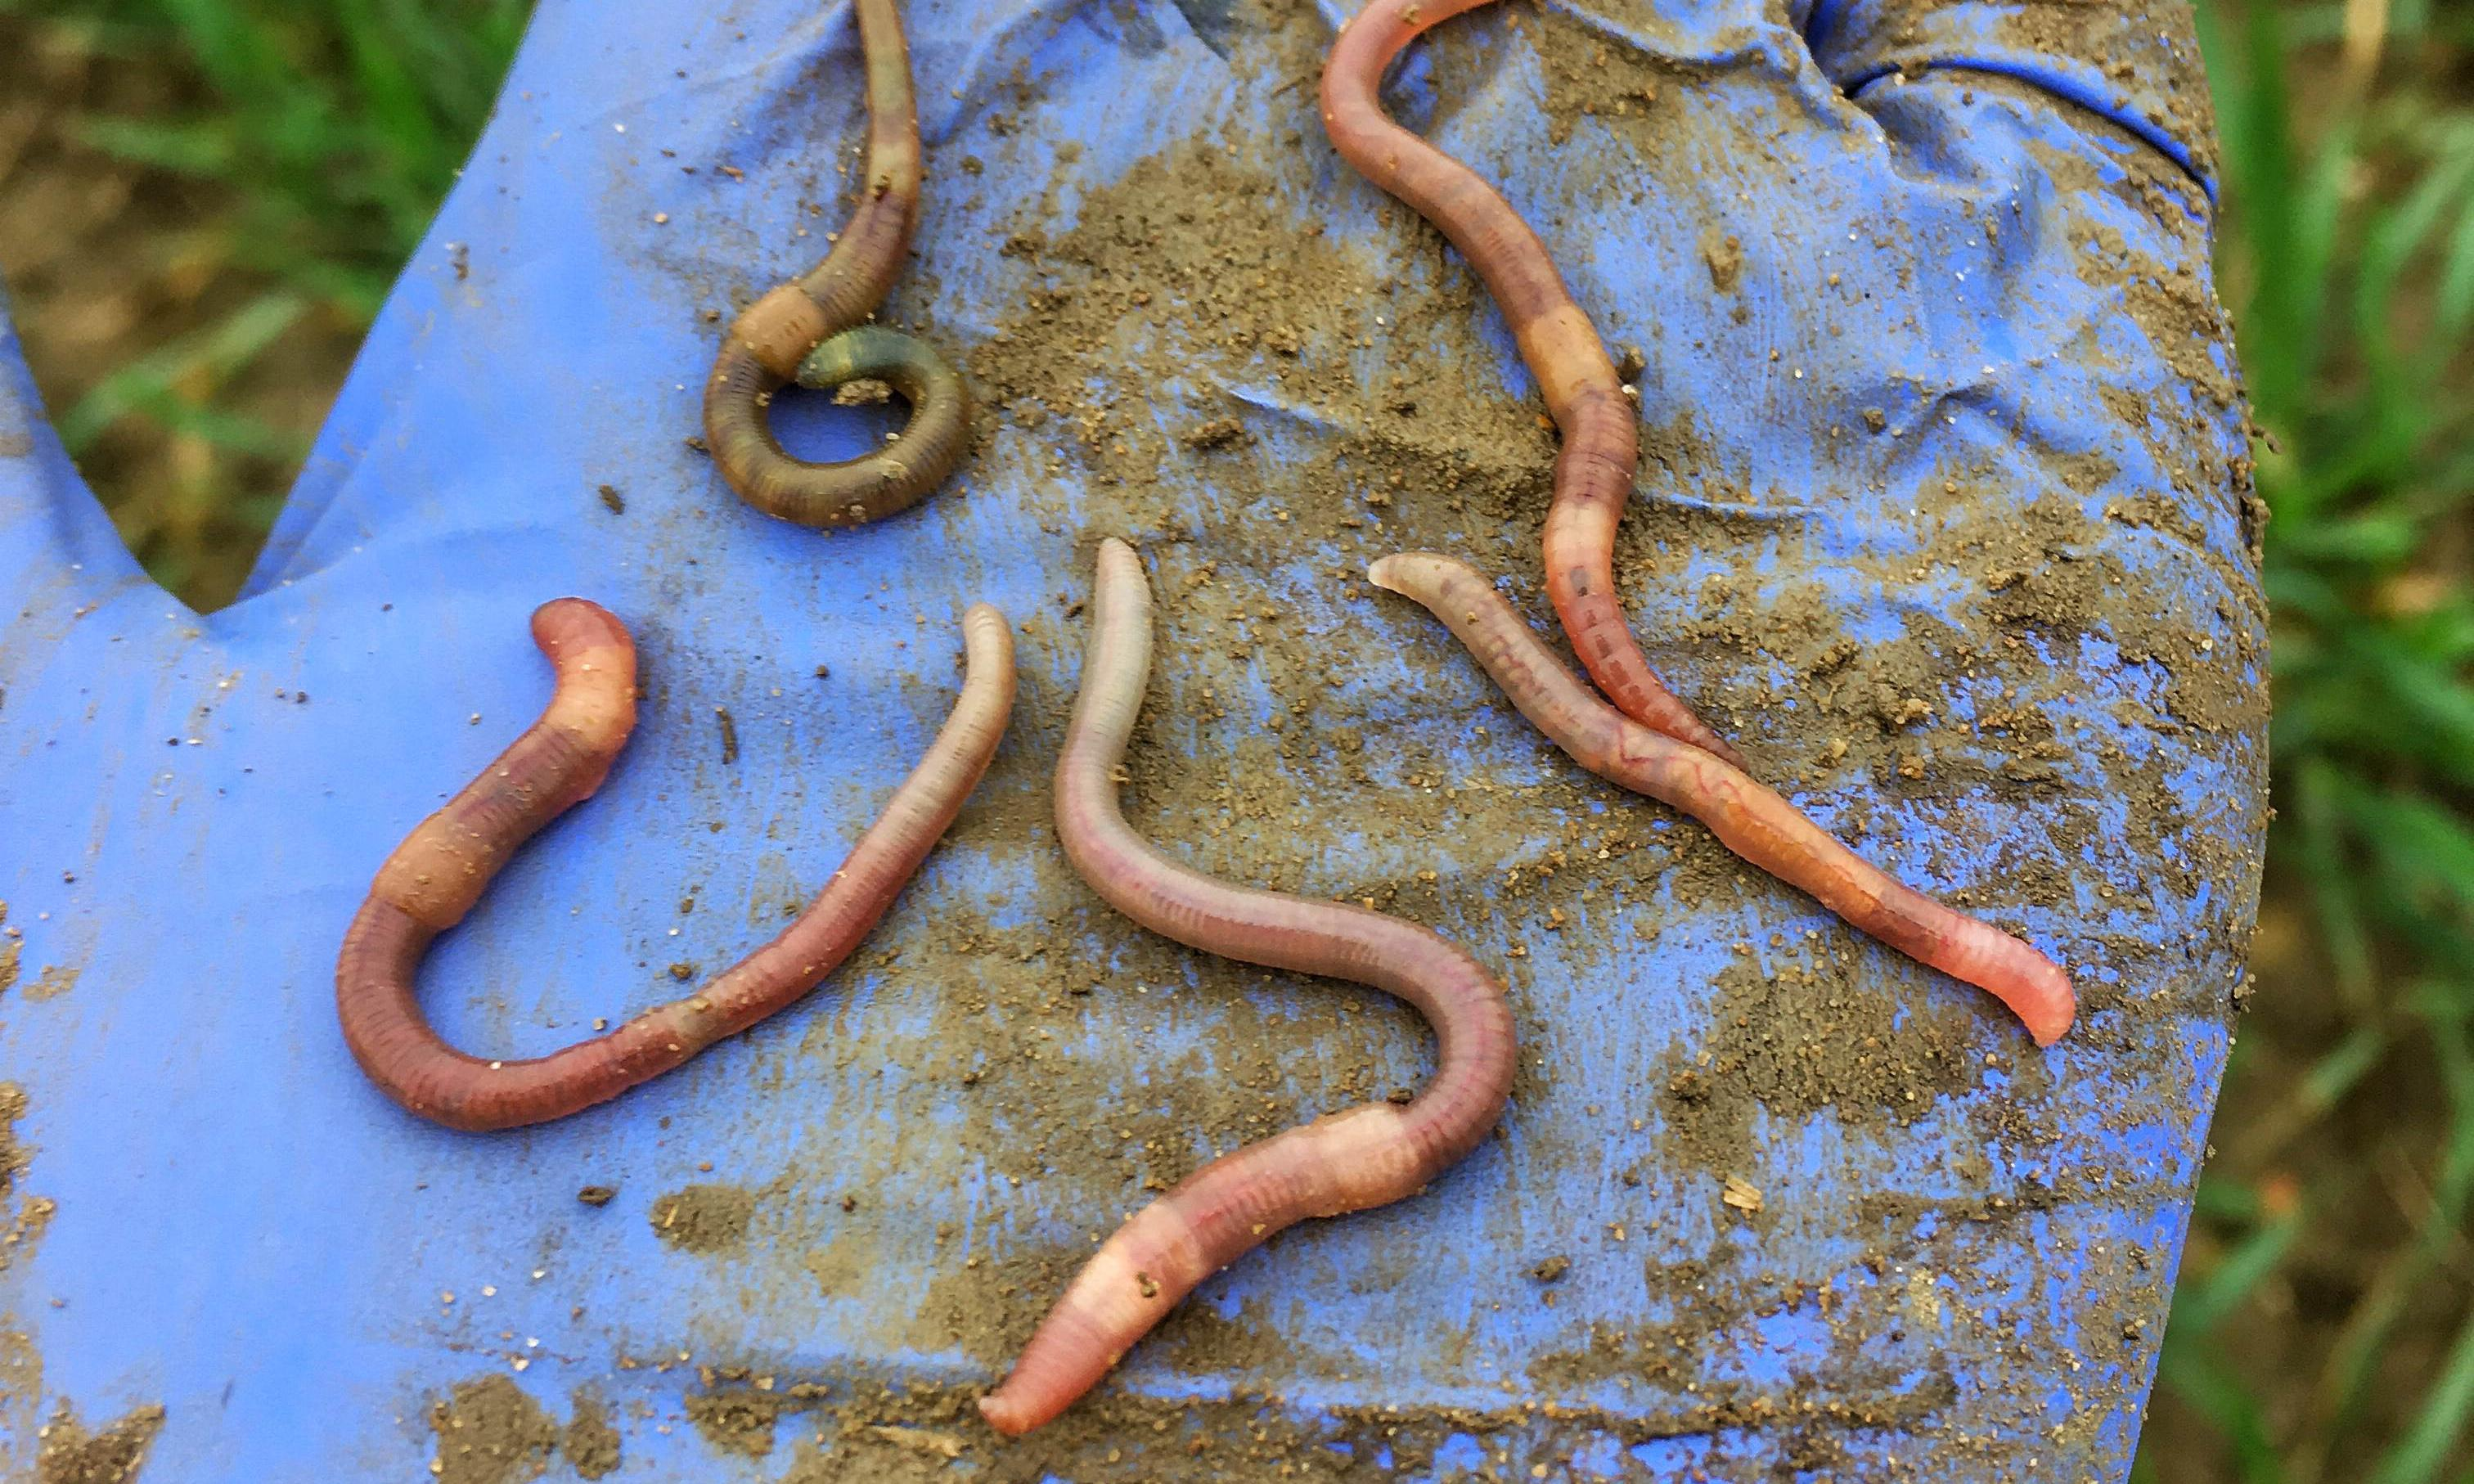 Specieswatch: farmers fight to save Britain's disappearing earthworms